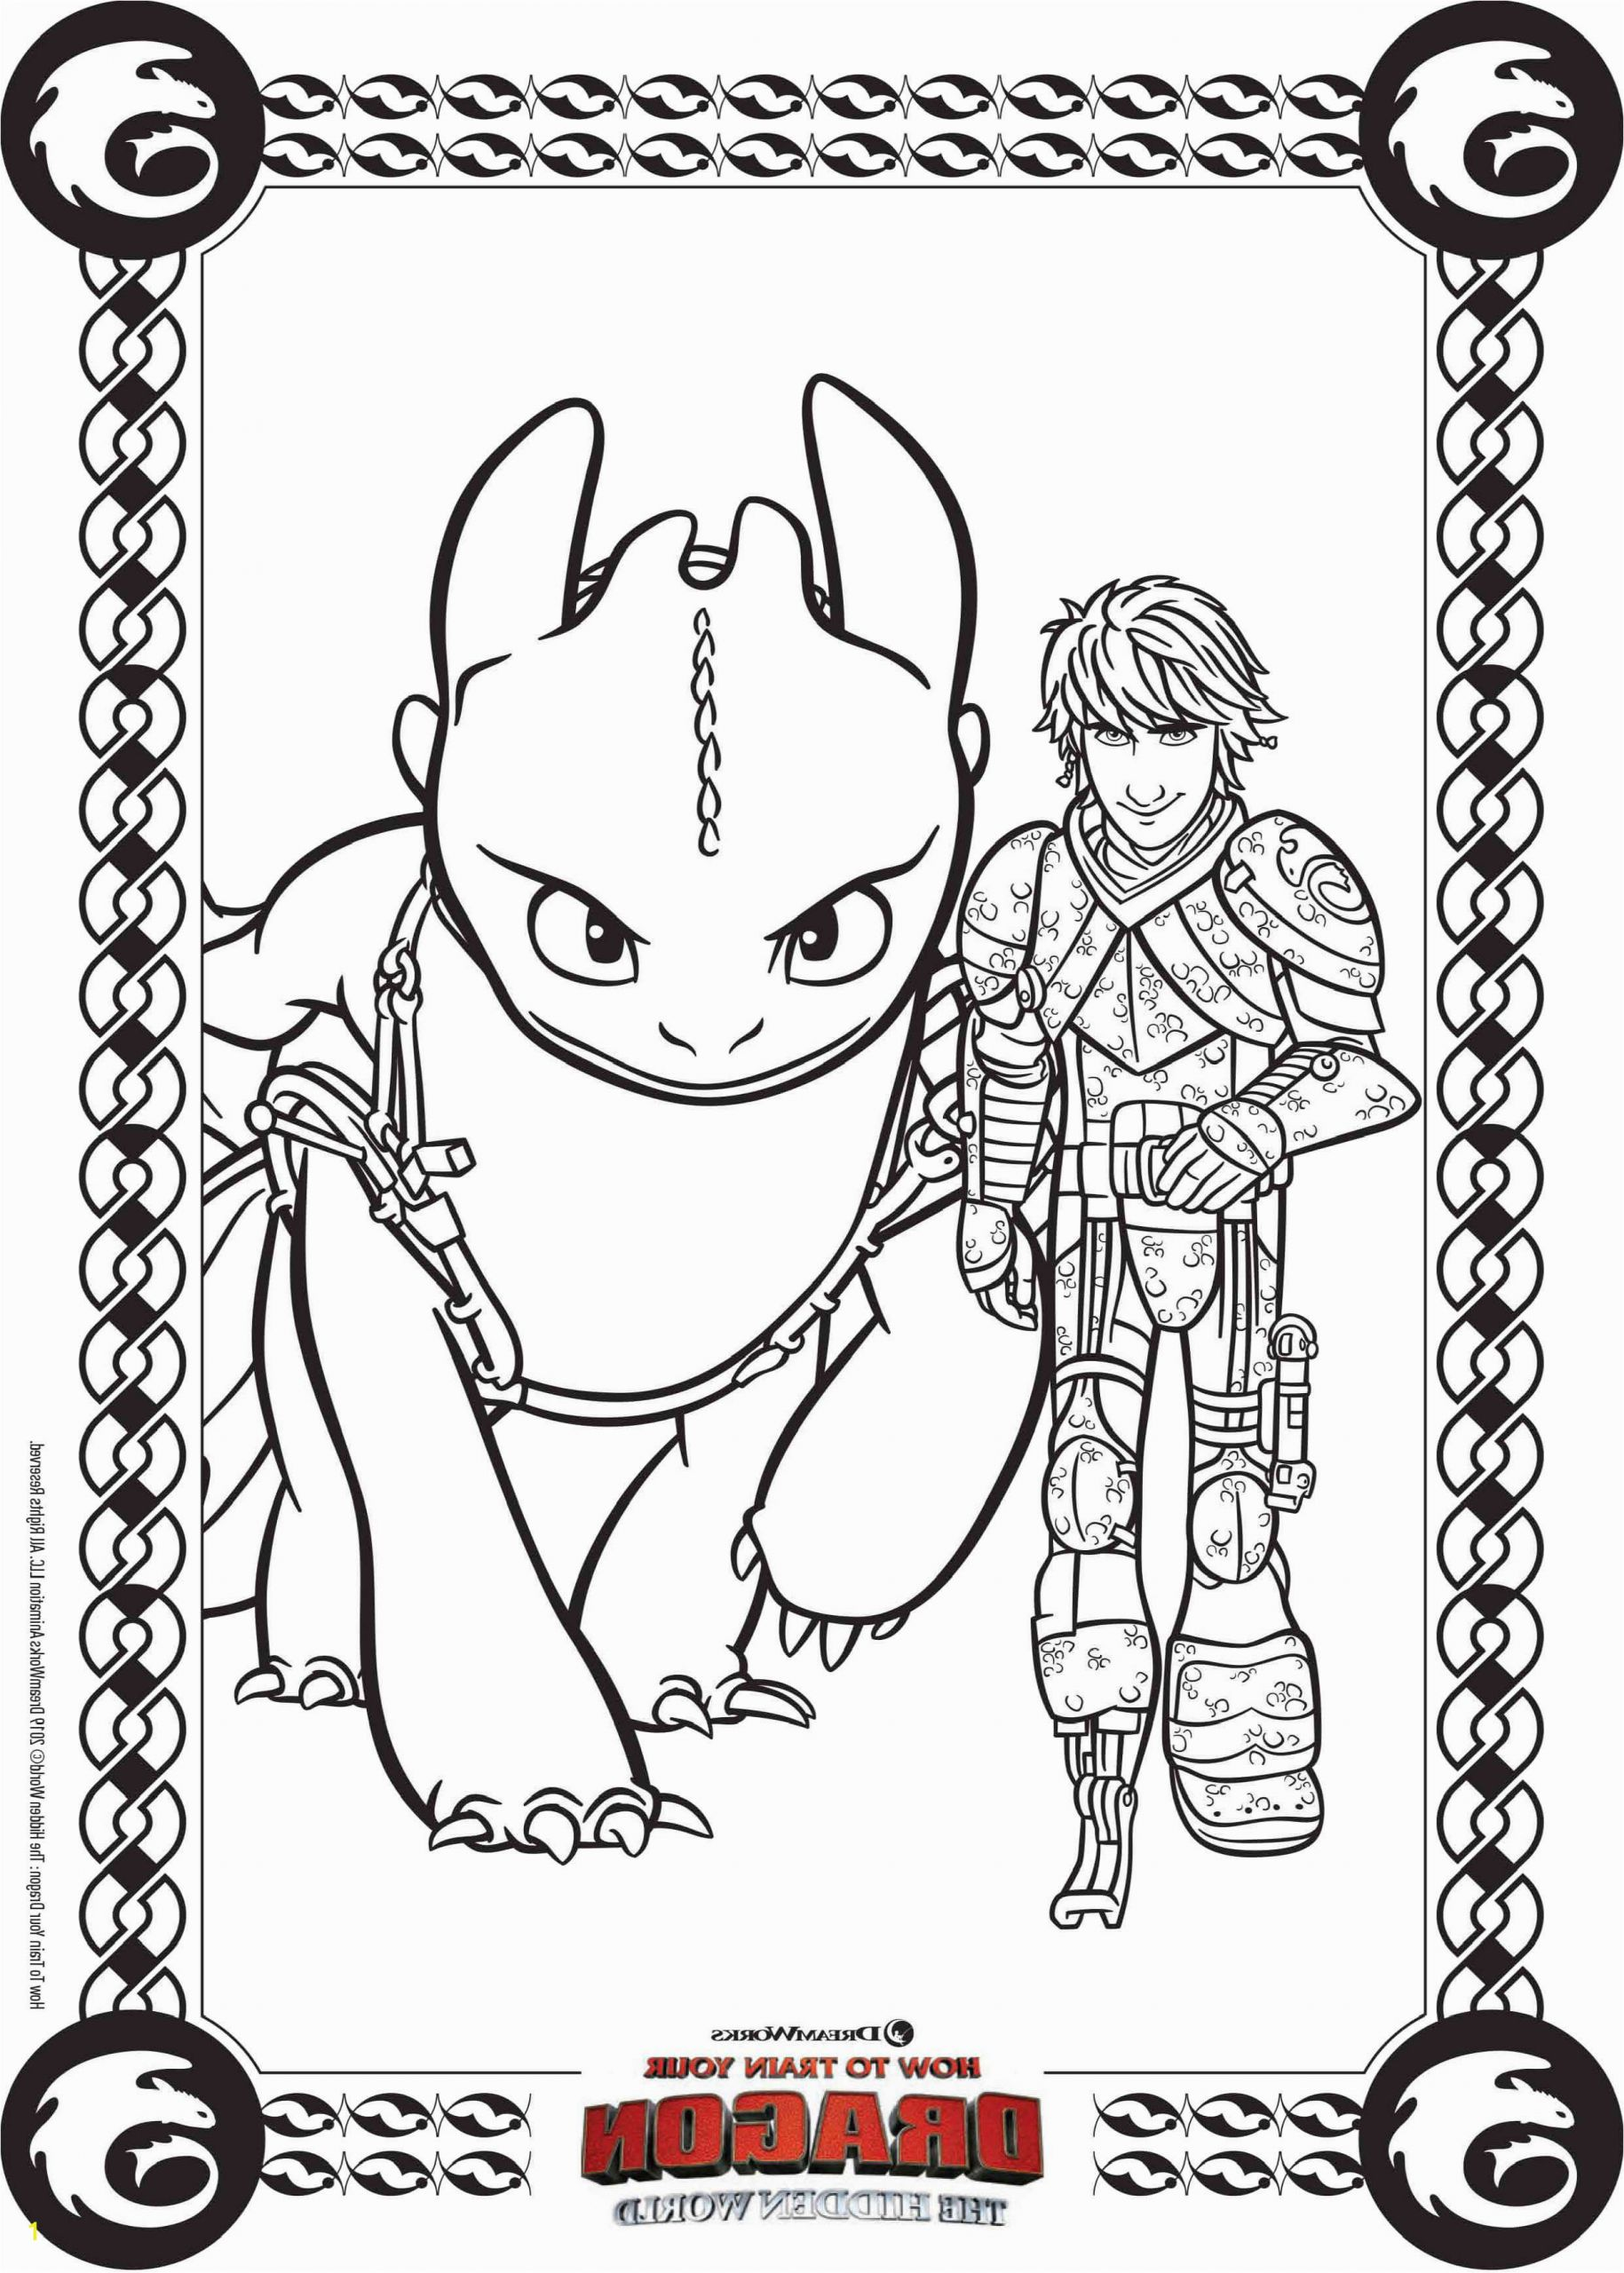 train your dragon coloring page inspirational stock how to train your dragon the hidden world movie site of train your dragon coloring page